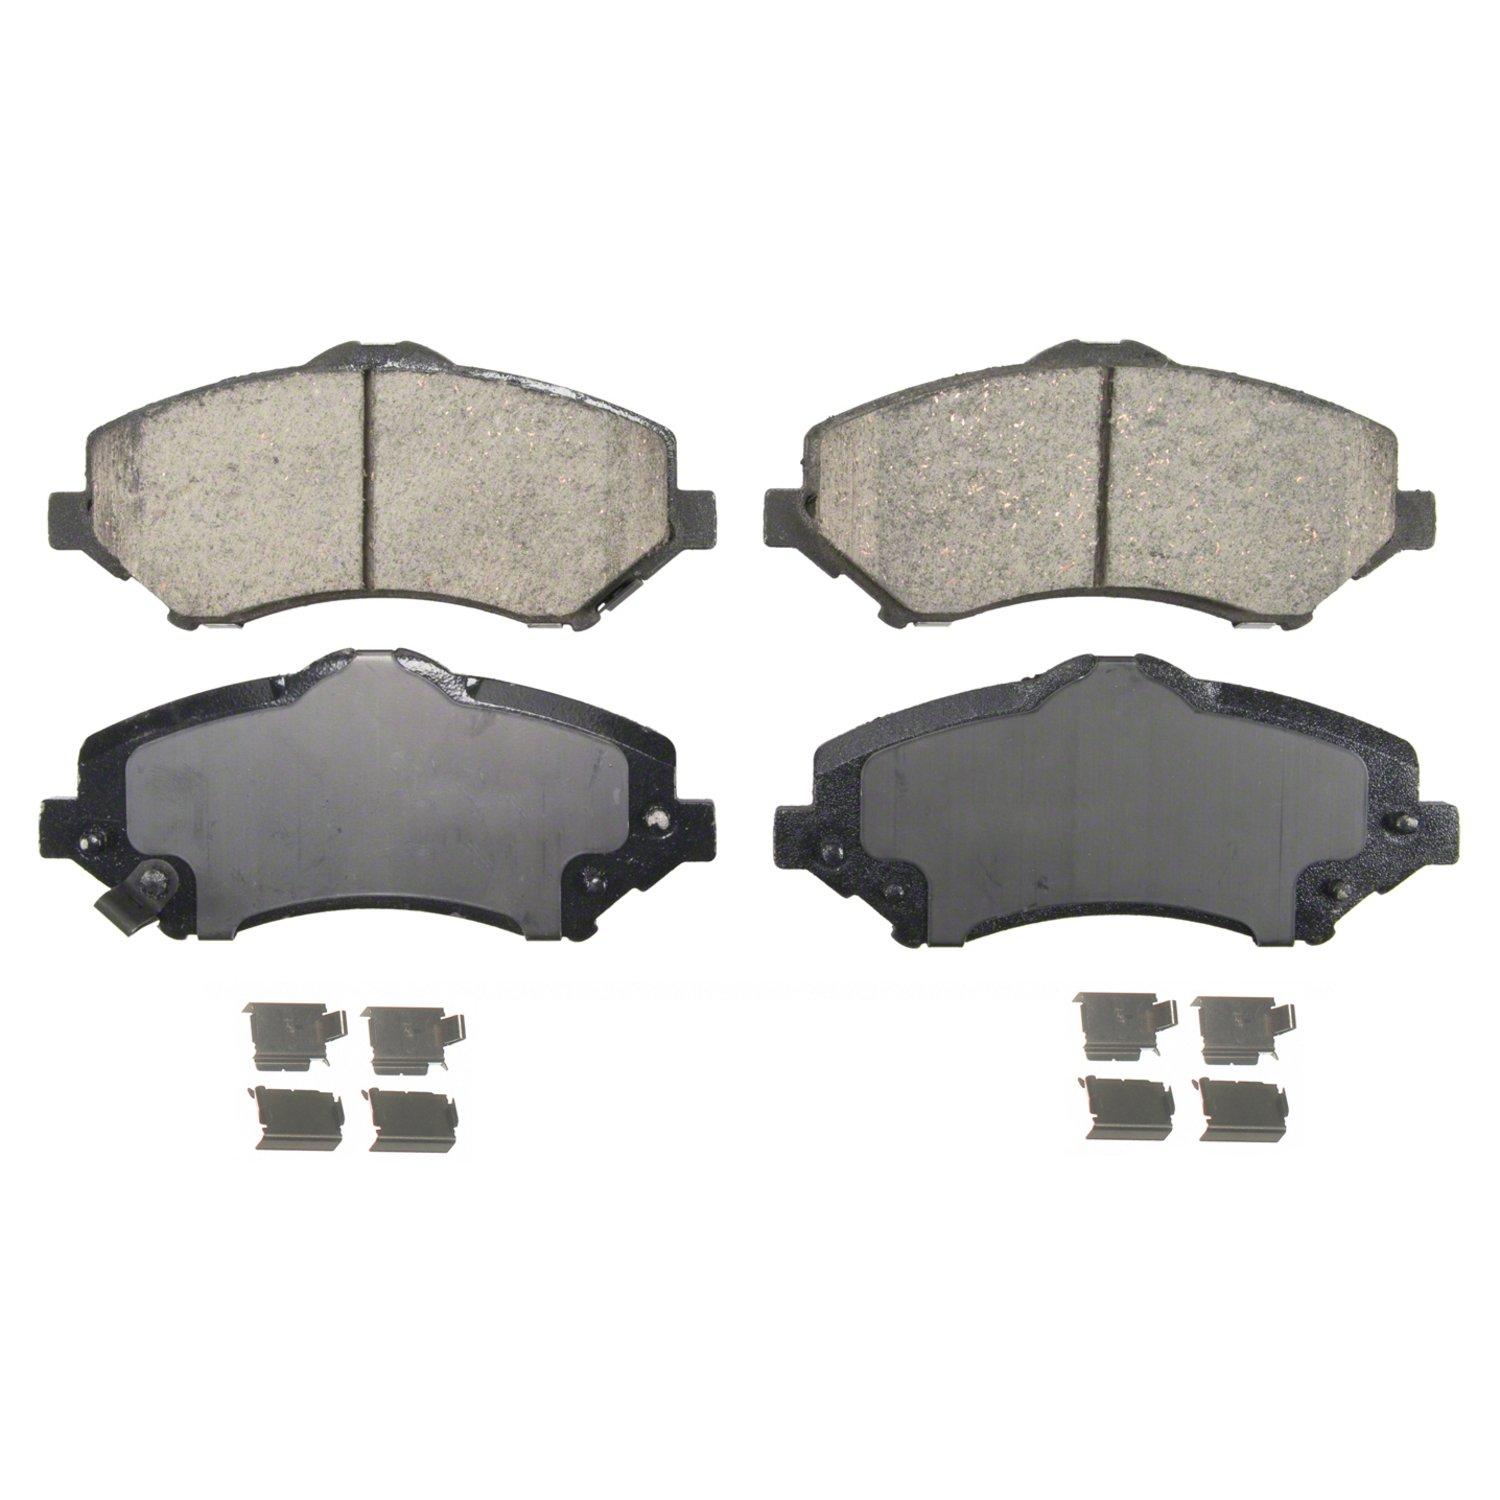 Wagner QuickStop ZD1273 Ceramic Disc Pad Set Includes Pad Installation Hardware, Front